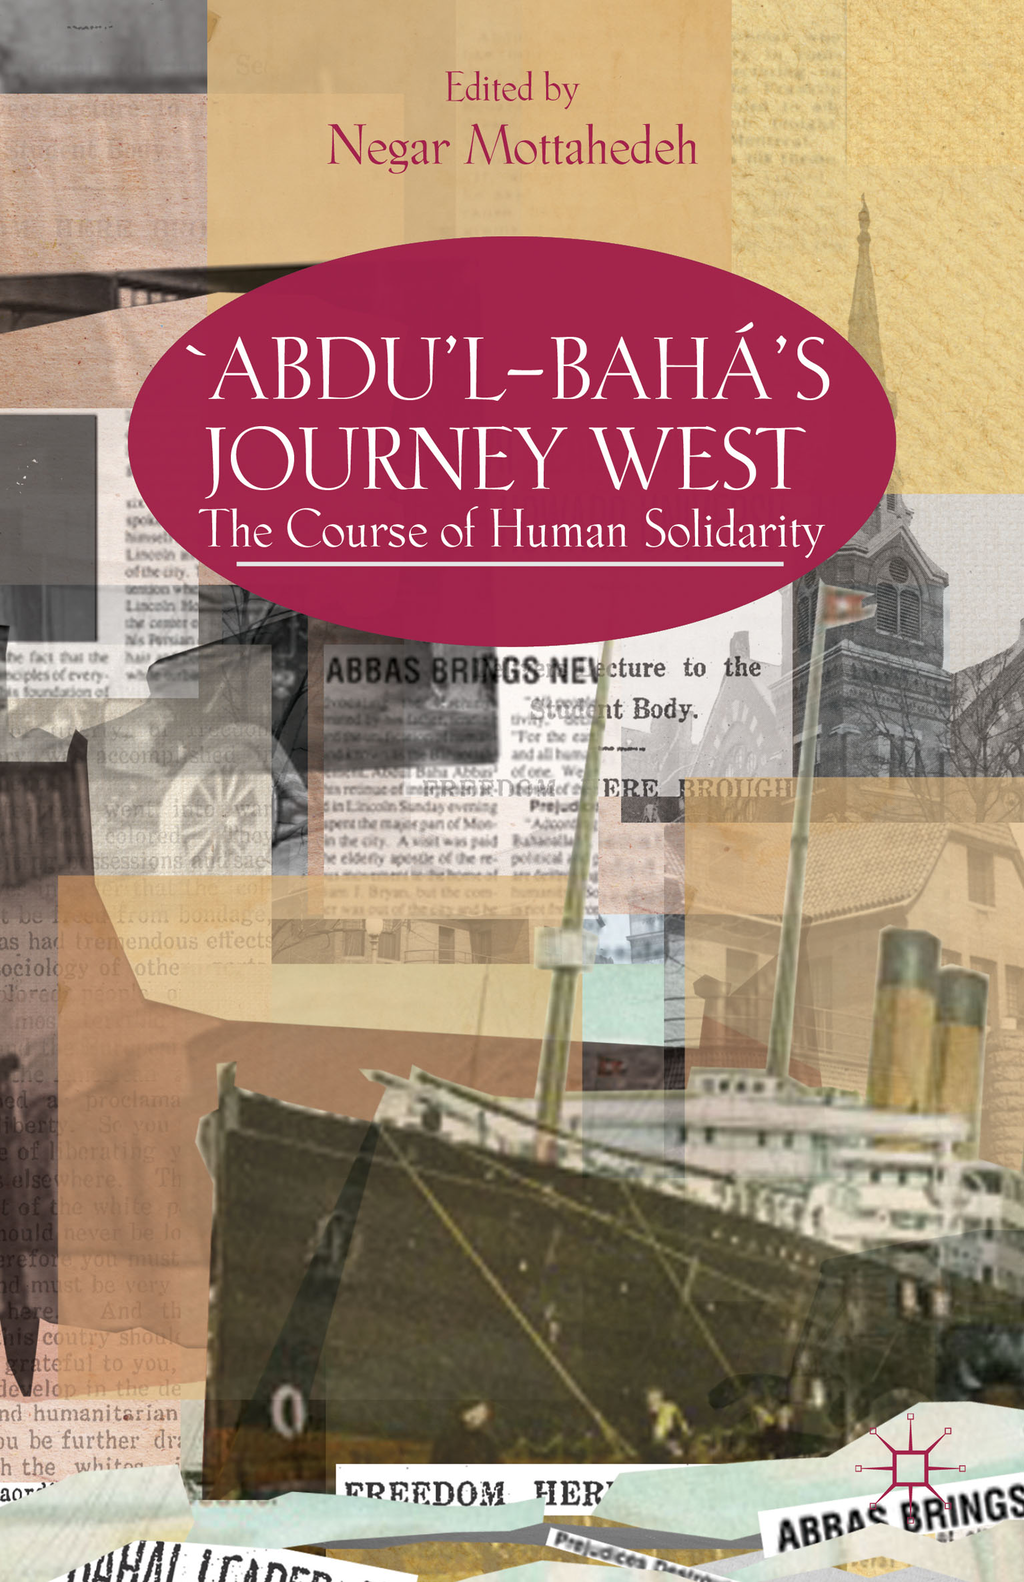 'Abdu'l-Bahá's Journey West